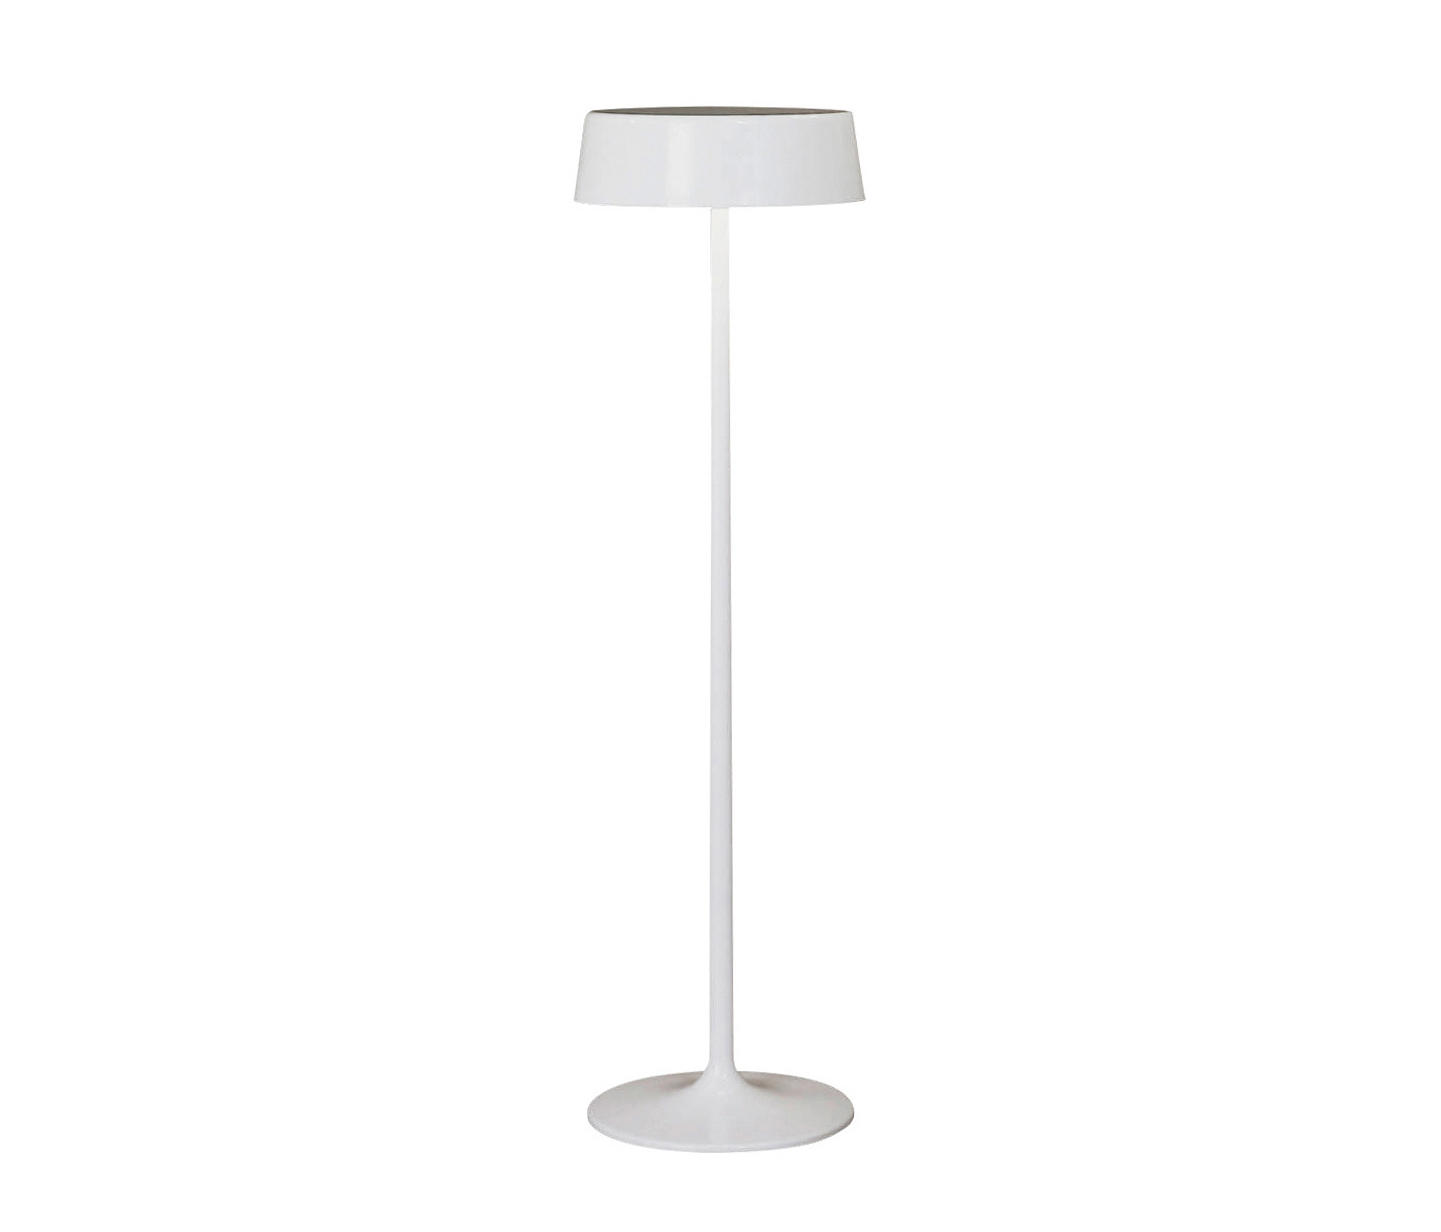 China low floor lamp general lighting from penta architonic china low floor lamp by penta general lighting mozeypictures Image collections